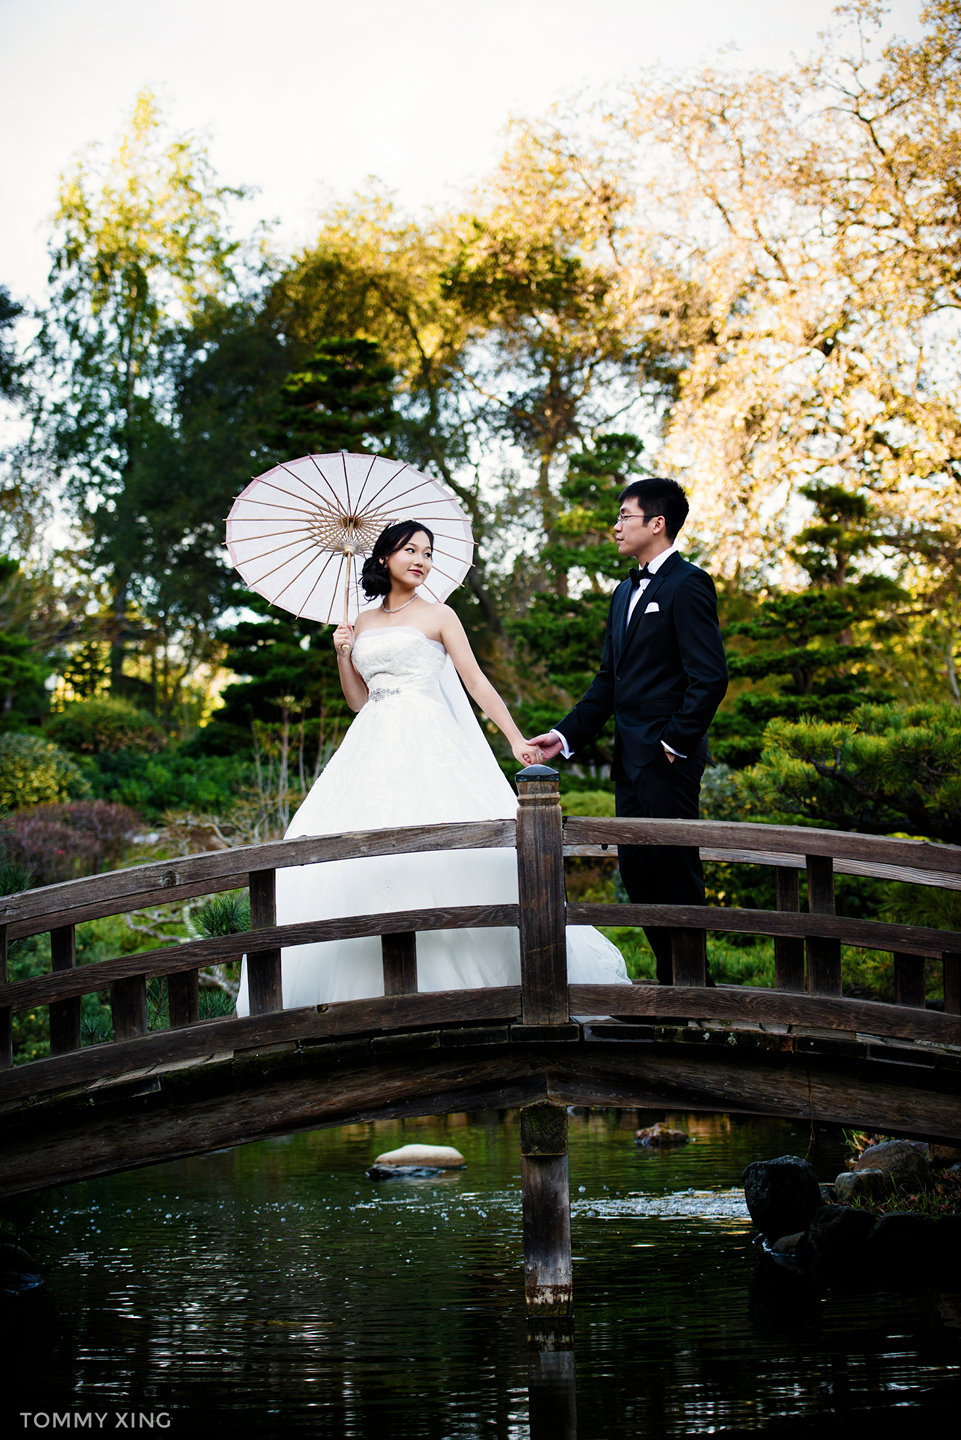 San Francisco Bay Area Chinese Pre Wedding Photographer Tommy Xing 旧金山湾区婚纱照摄影 13.jpg